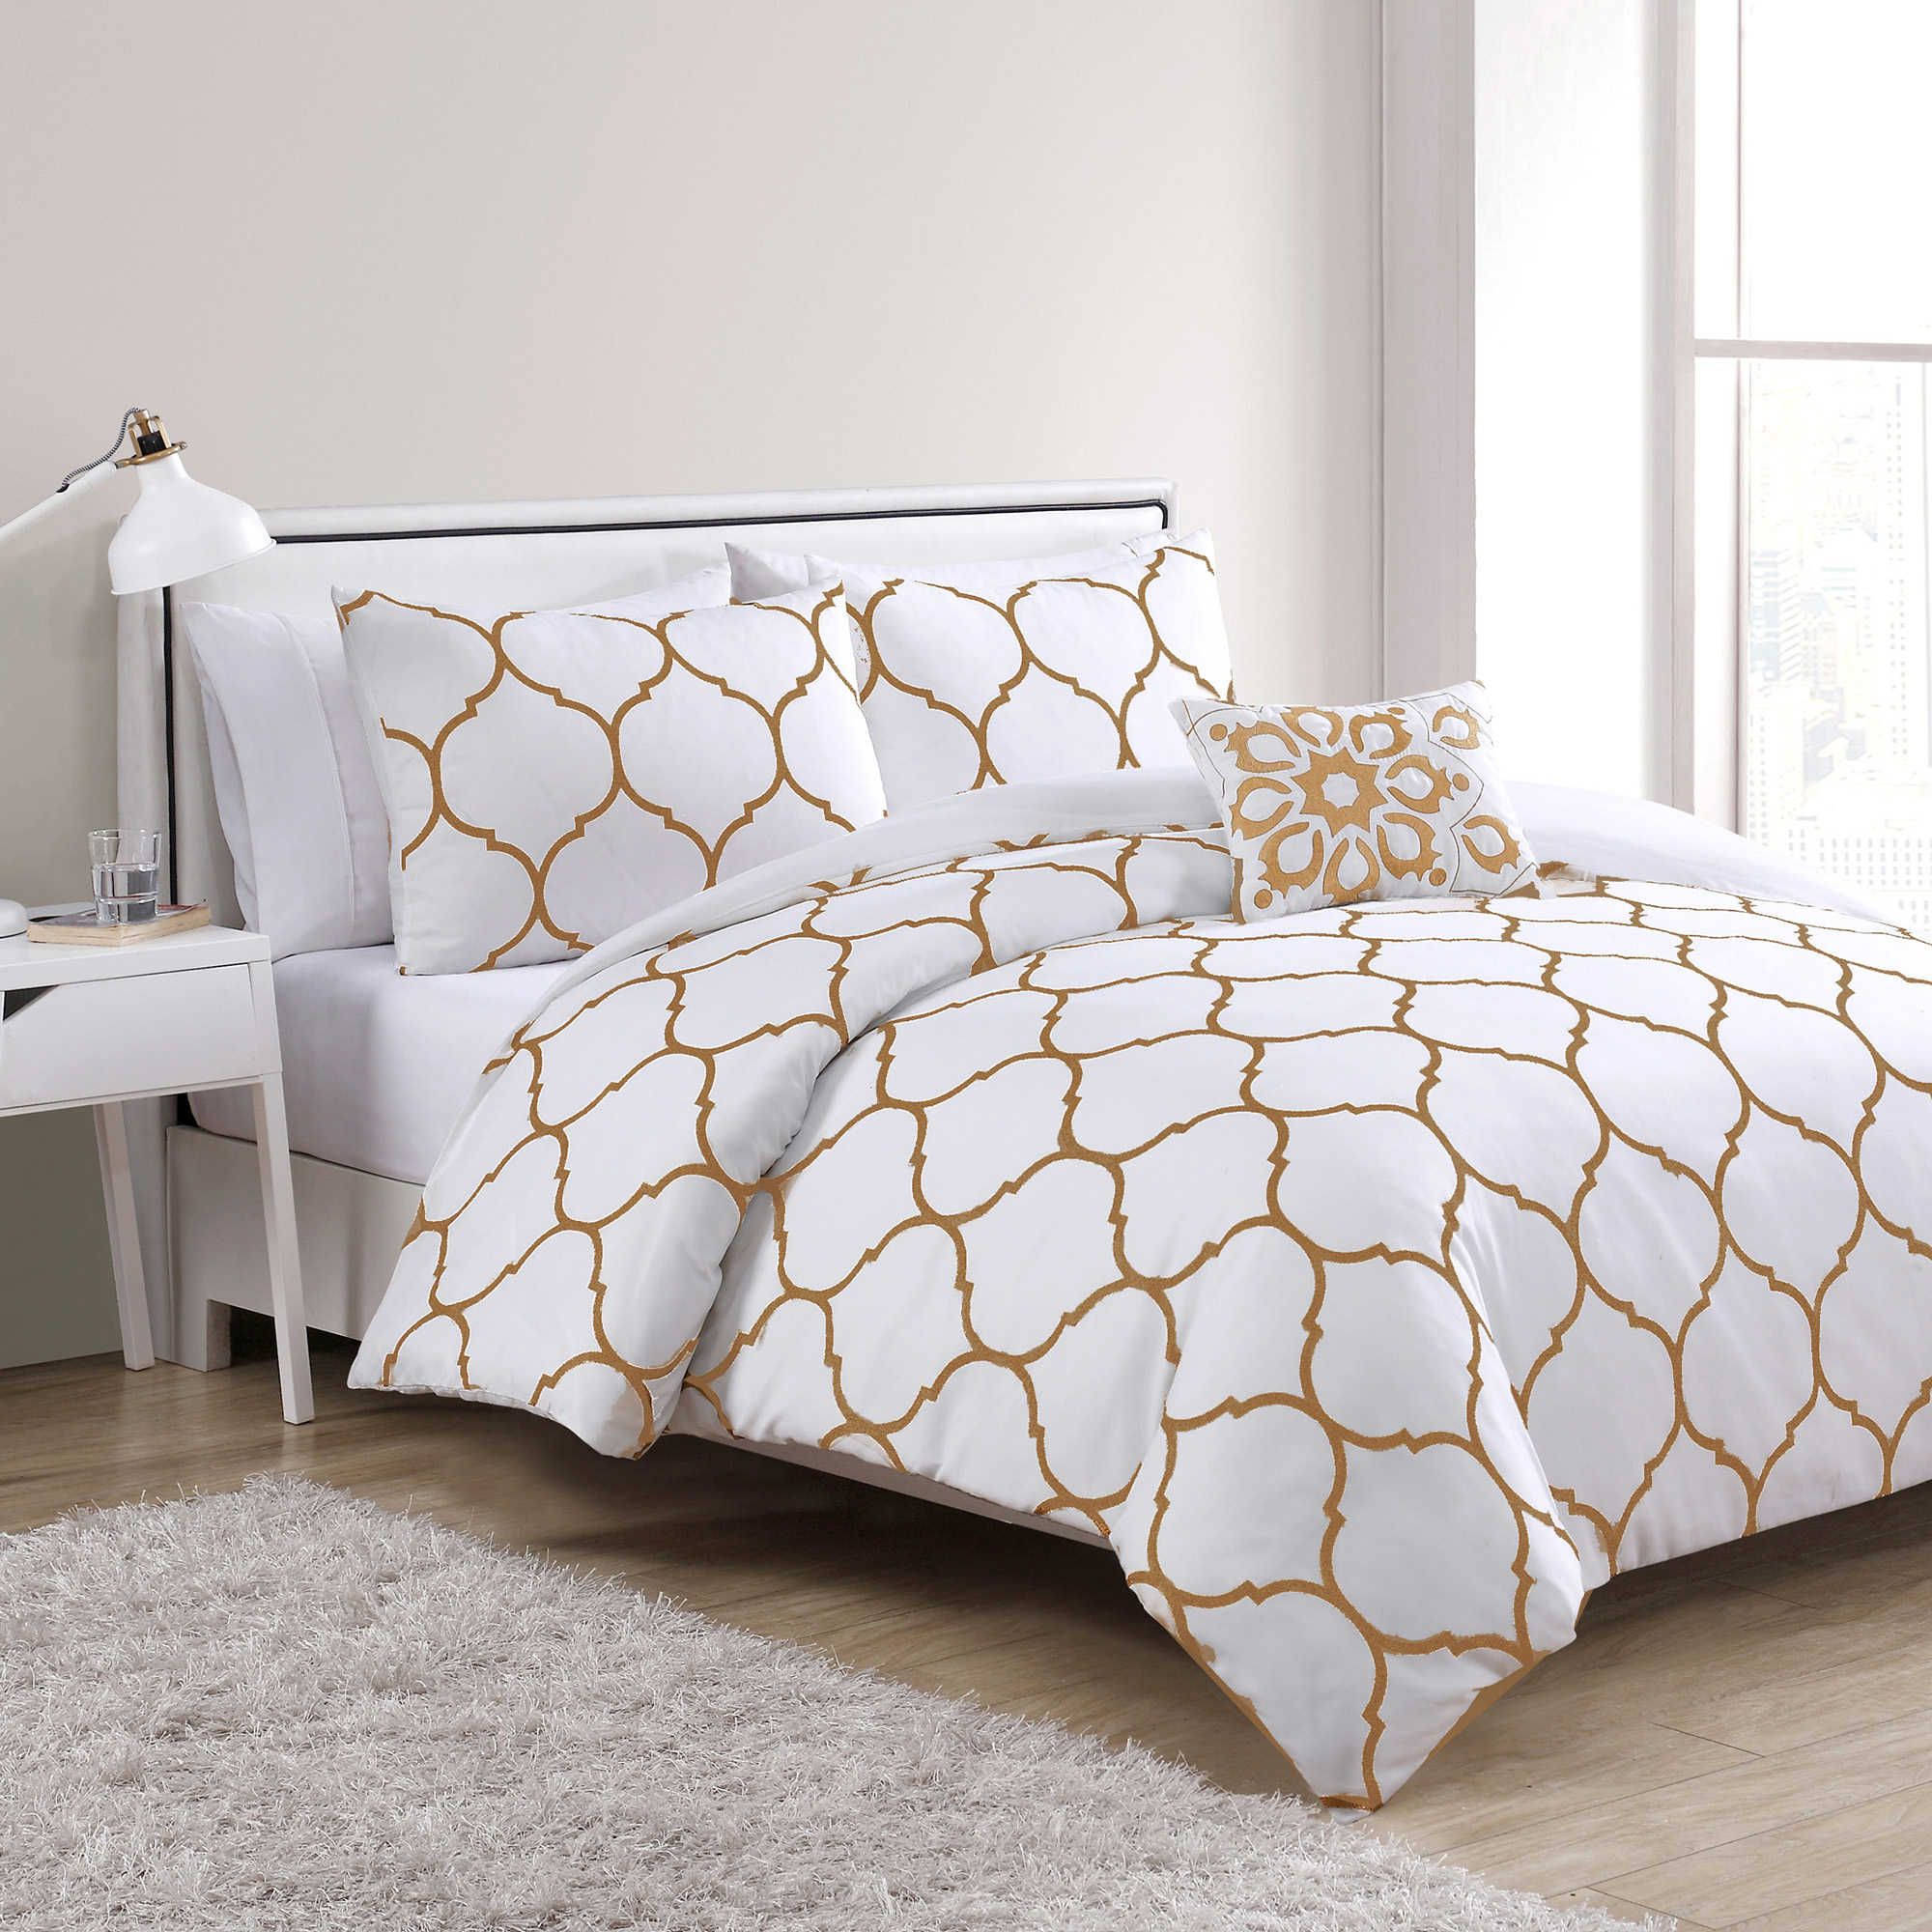 VCNY Ogee 4-Piece Full/Queen Comforter Set in Gold/White ...